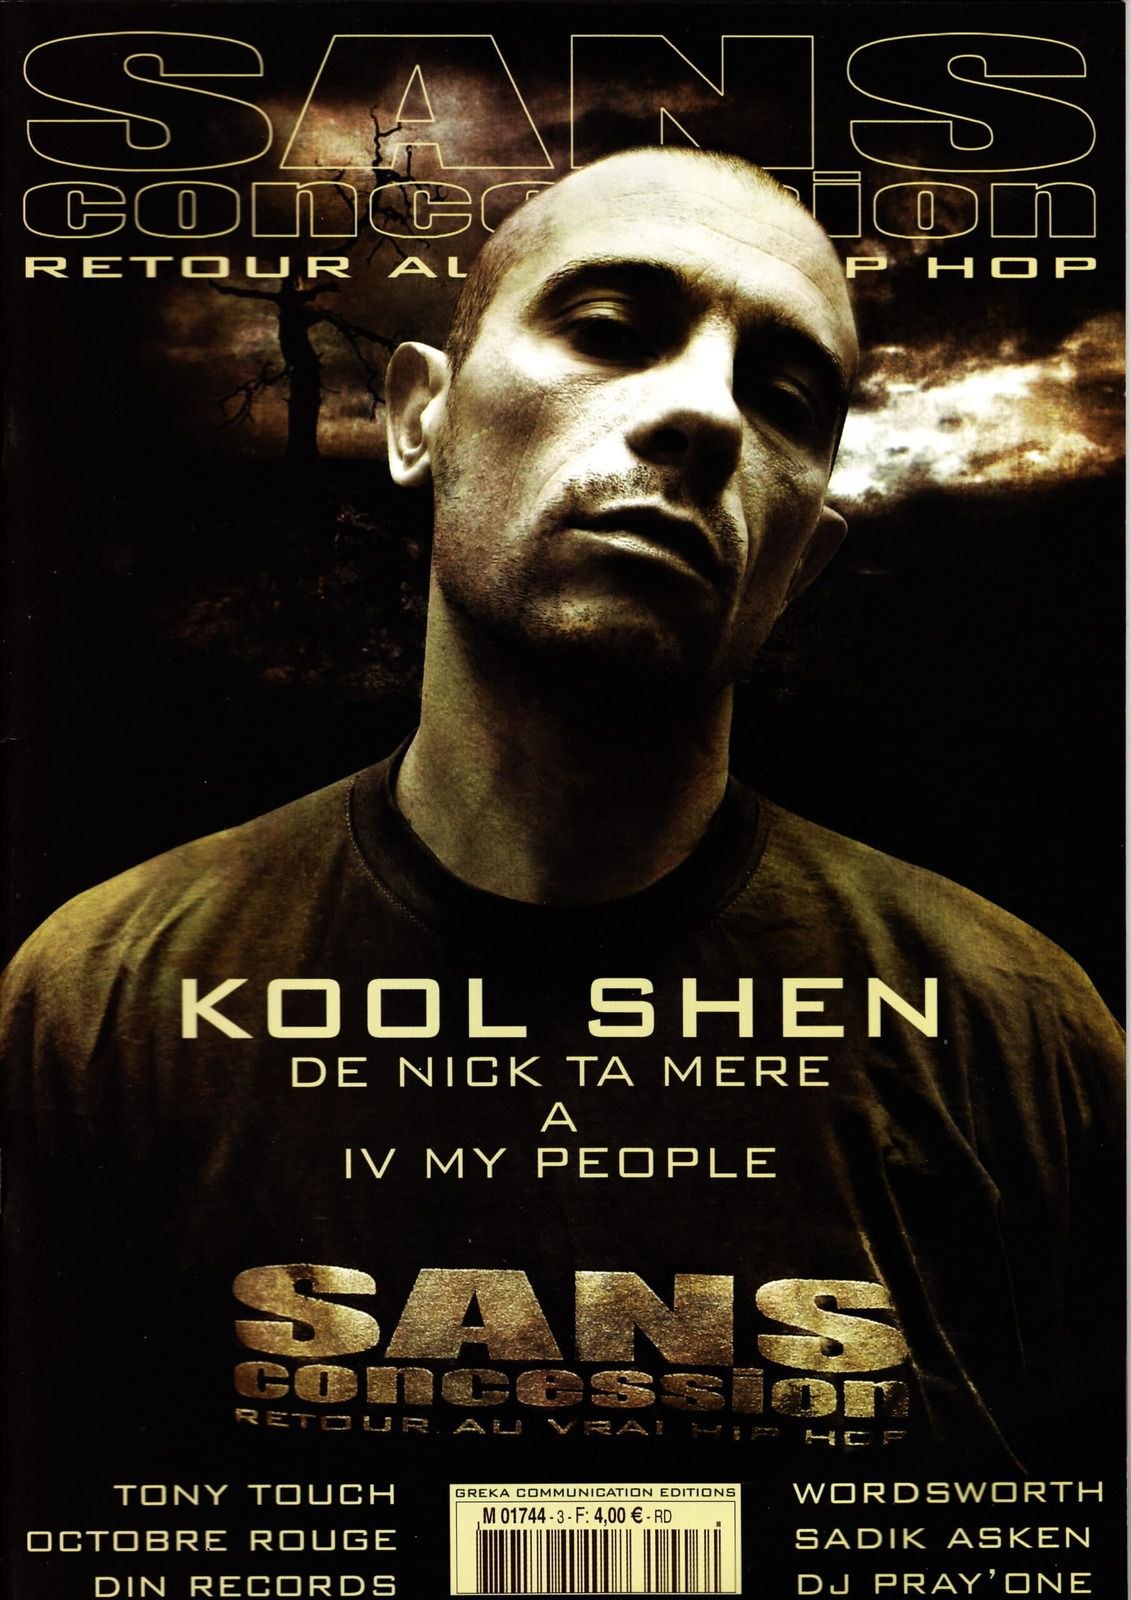 Kool Shen (Nick ta mère à IV my people), Tony Touch, Octobre Rouge, Dîn Records, wordsworth, Sadik Asken et Dj Pray One - Sans concession (fanzine hip-hop) - le rap c'était mieux avant